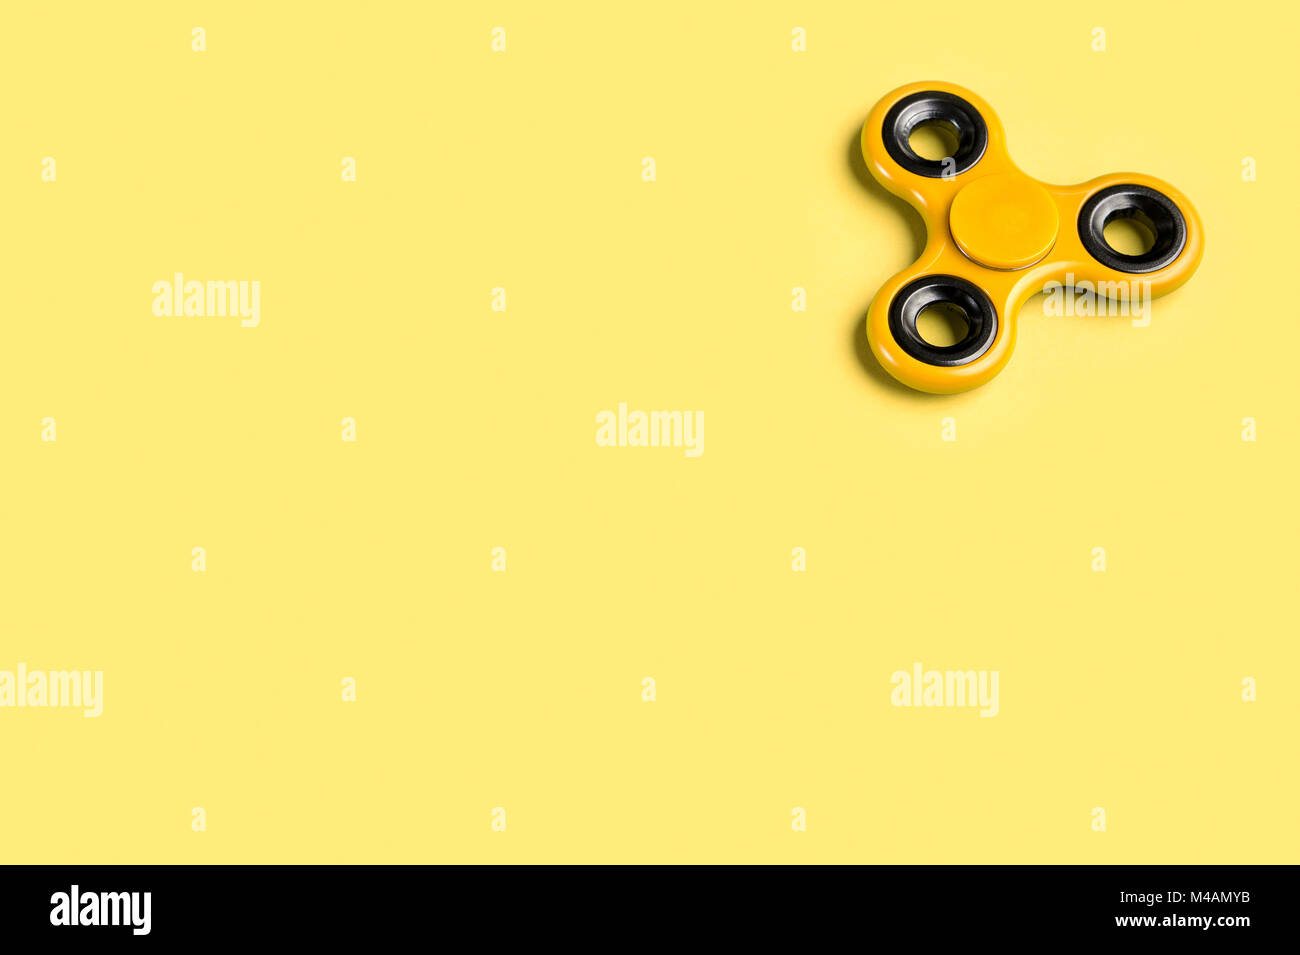 yellow fidget spinner background template with copy space popular